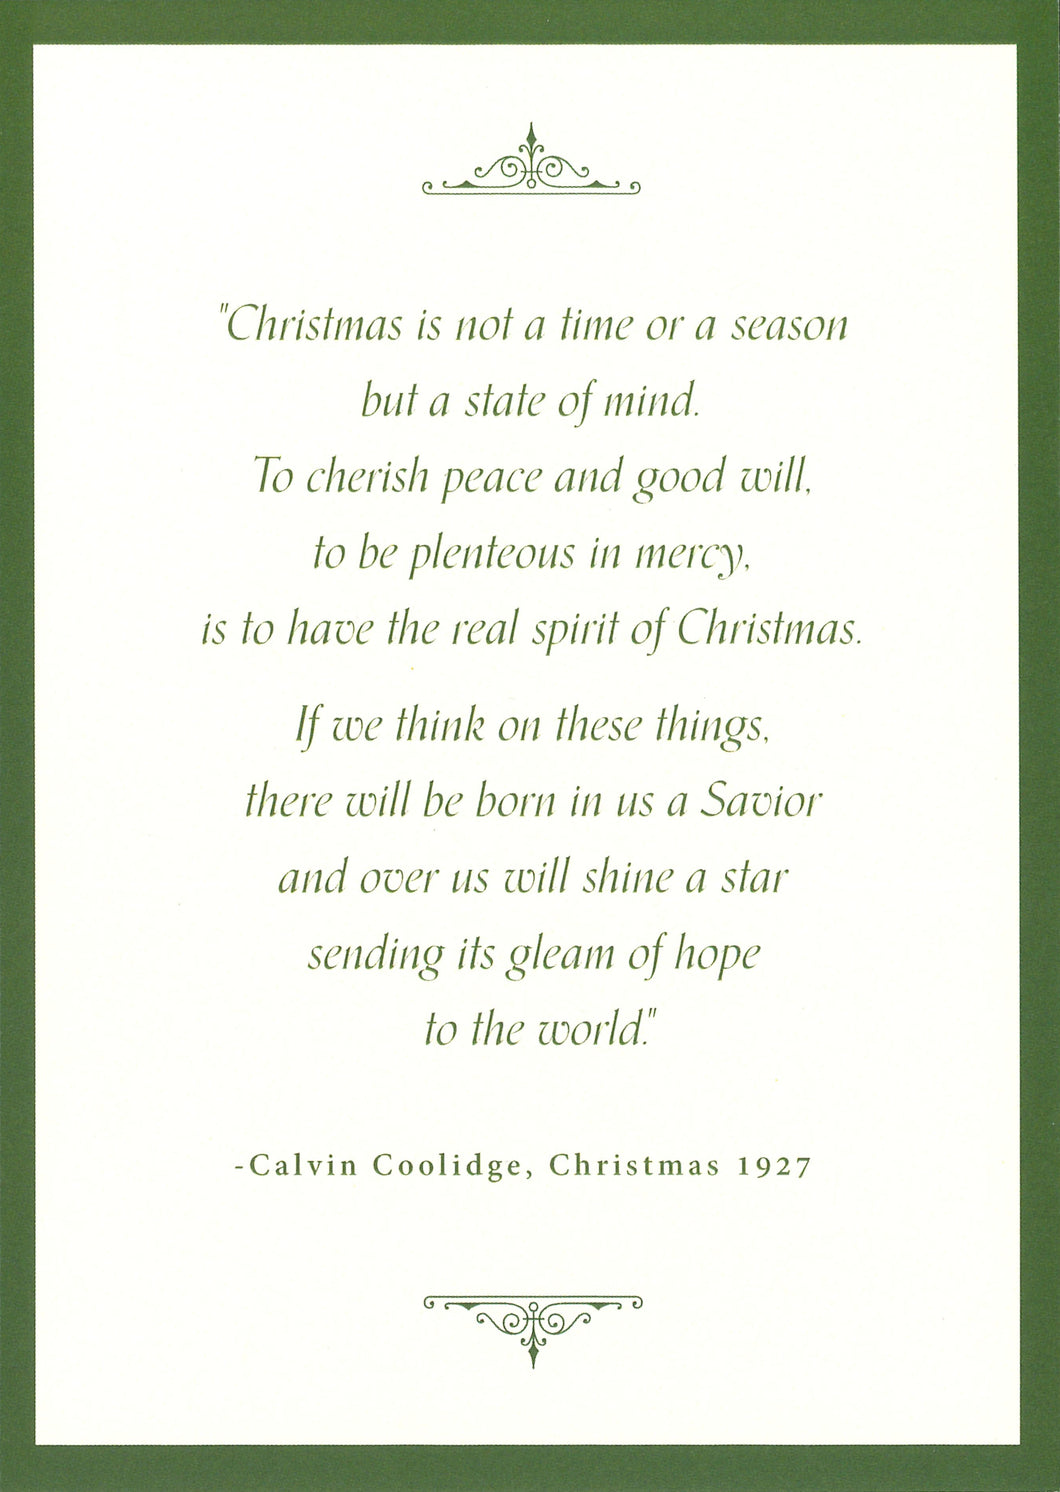 Coolidge 1927 Christmas Message Cards (8 count)